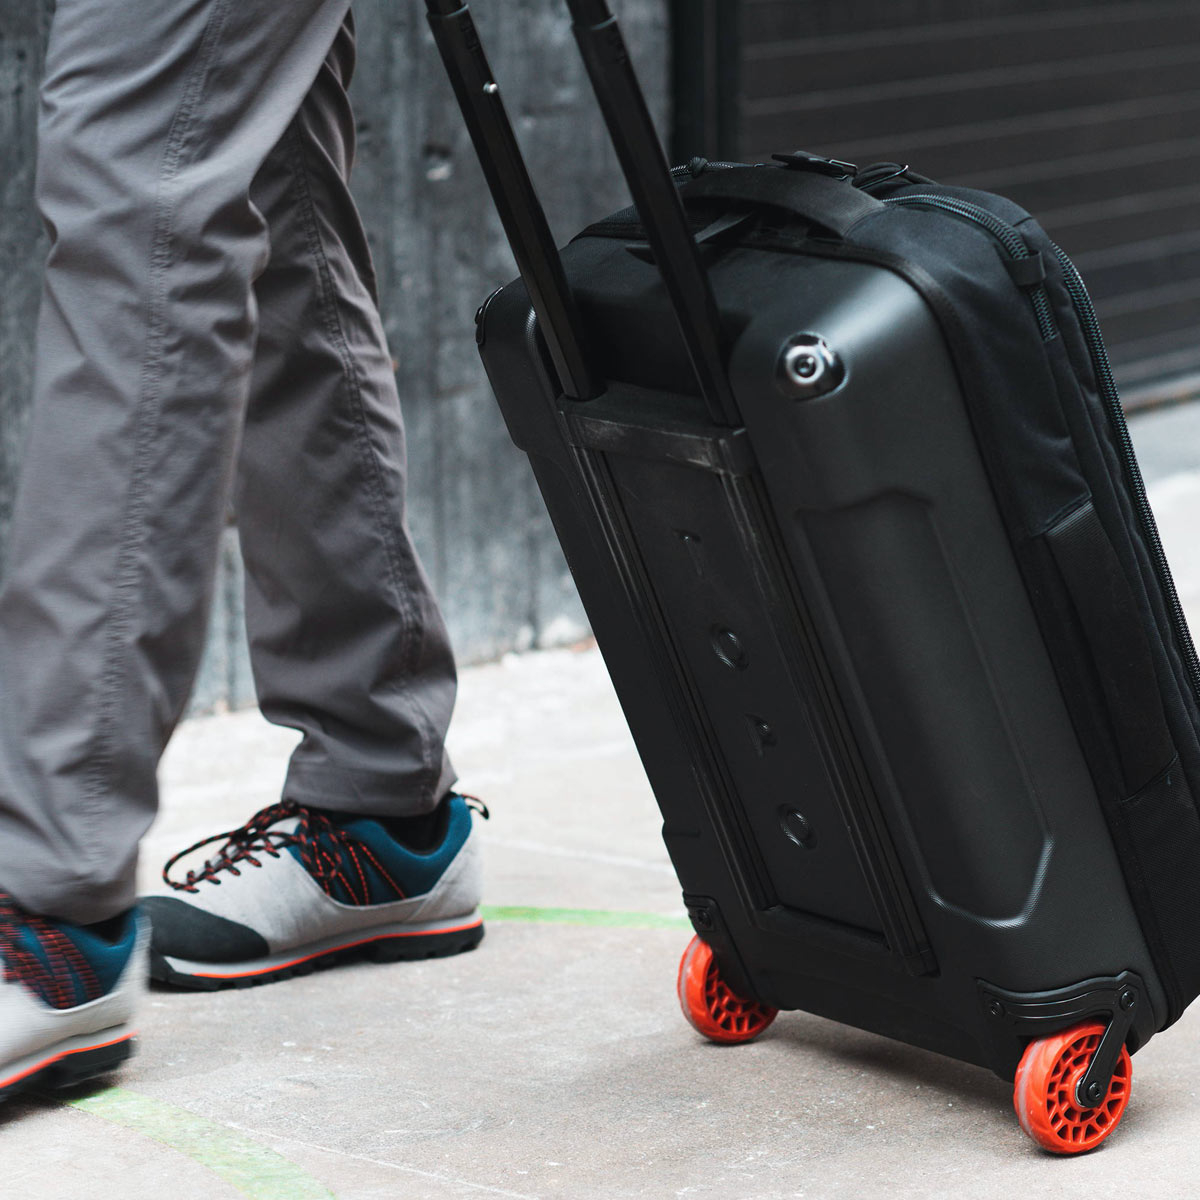 Topo Designs Travel Bag Roller Olive, plenty of internal organization into its carry-on friendly size